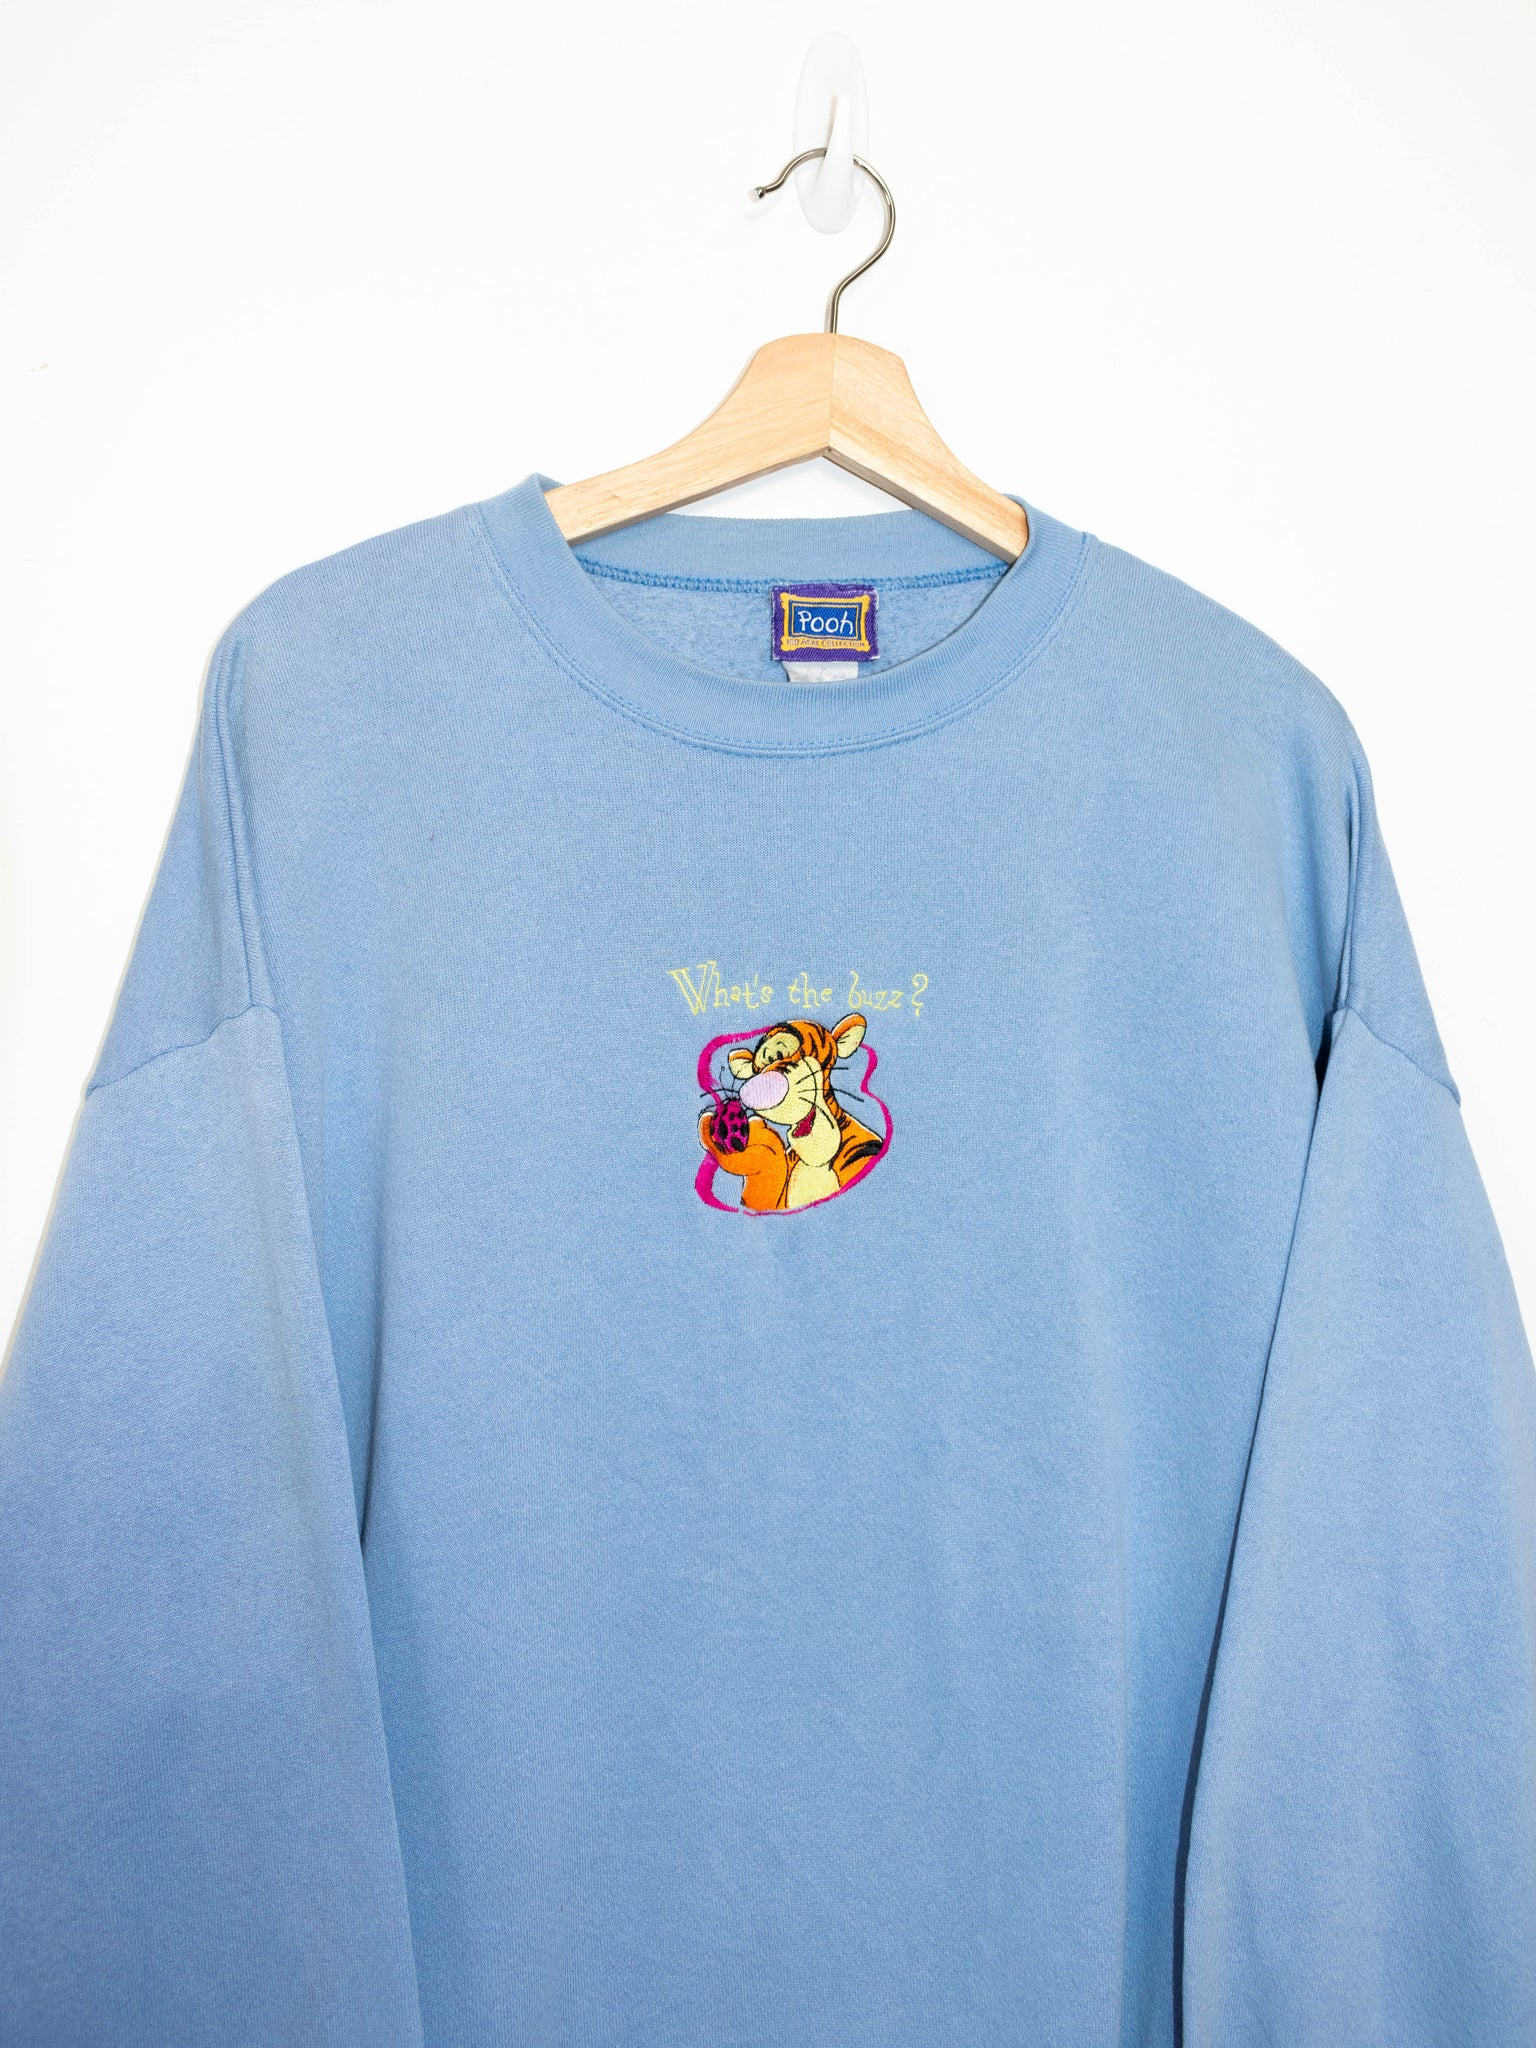 Vintage Disney sweater size: XL